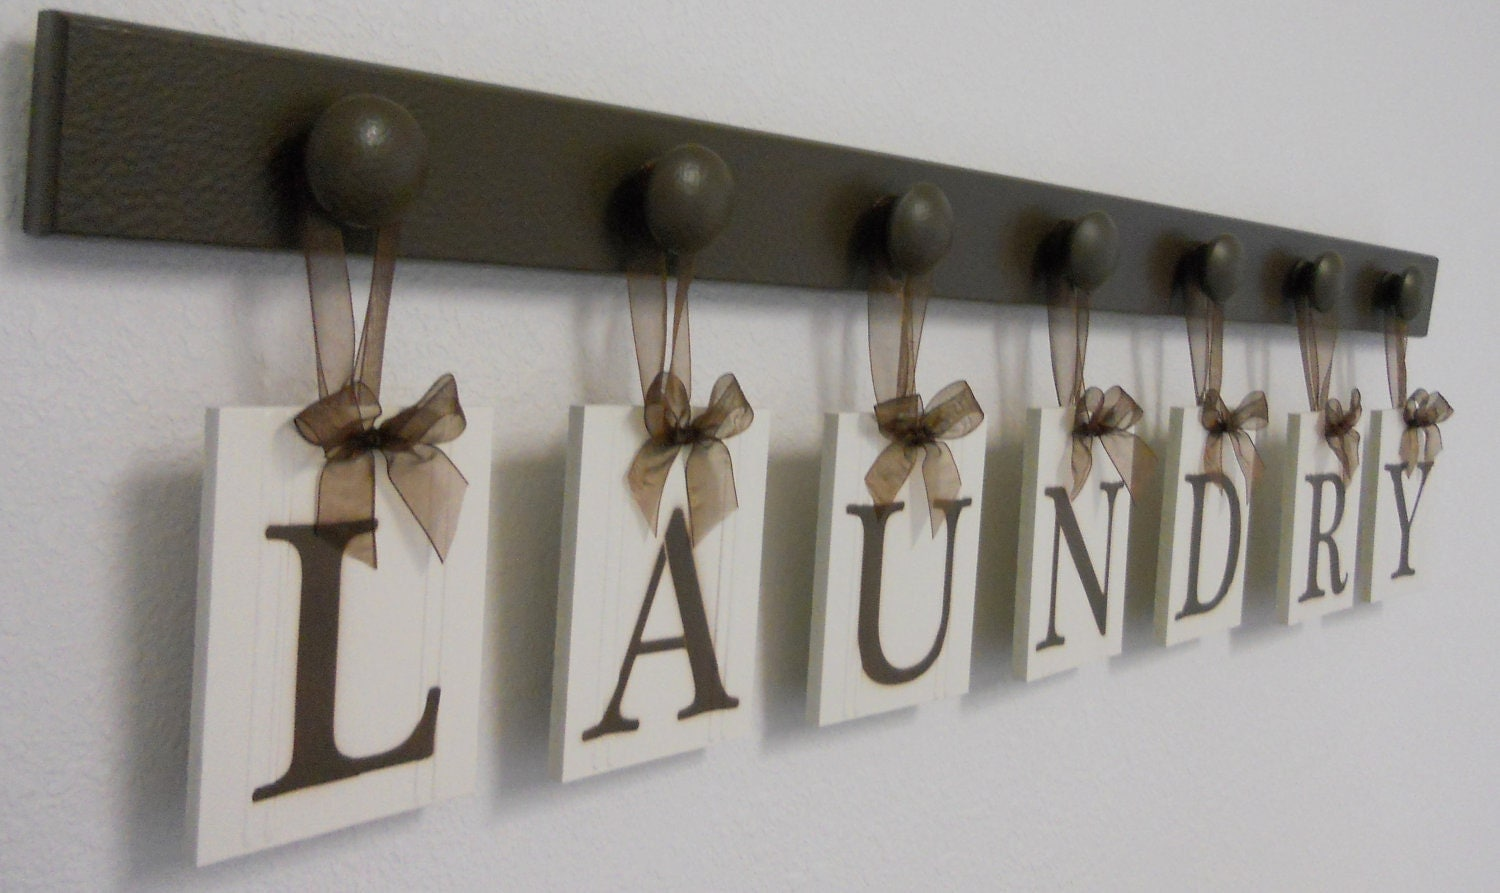 Laundry Room Decor Personalized Hanging Wall Letters includes Wooden Peg  Hangers and Letters LAUNDRY in Chocolate Brown or Black